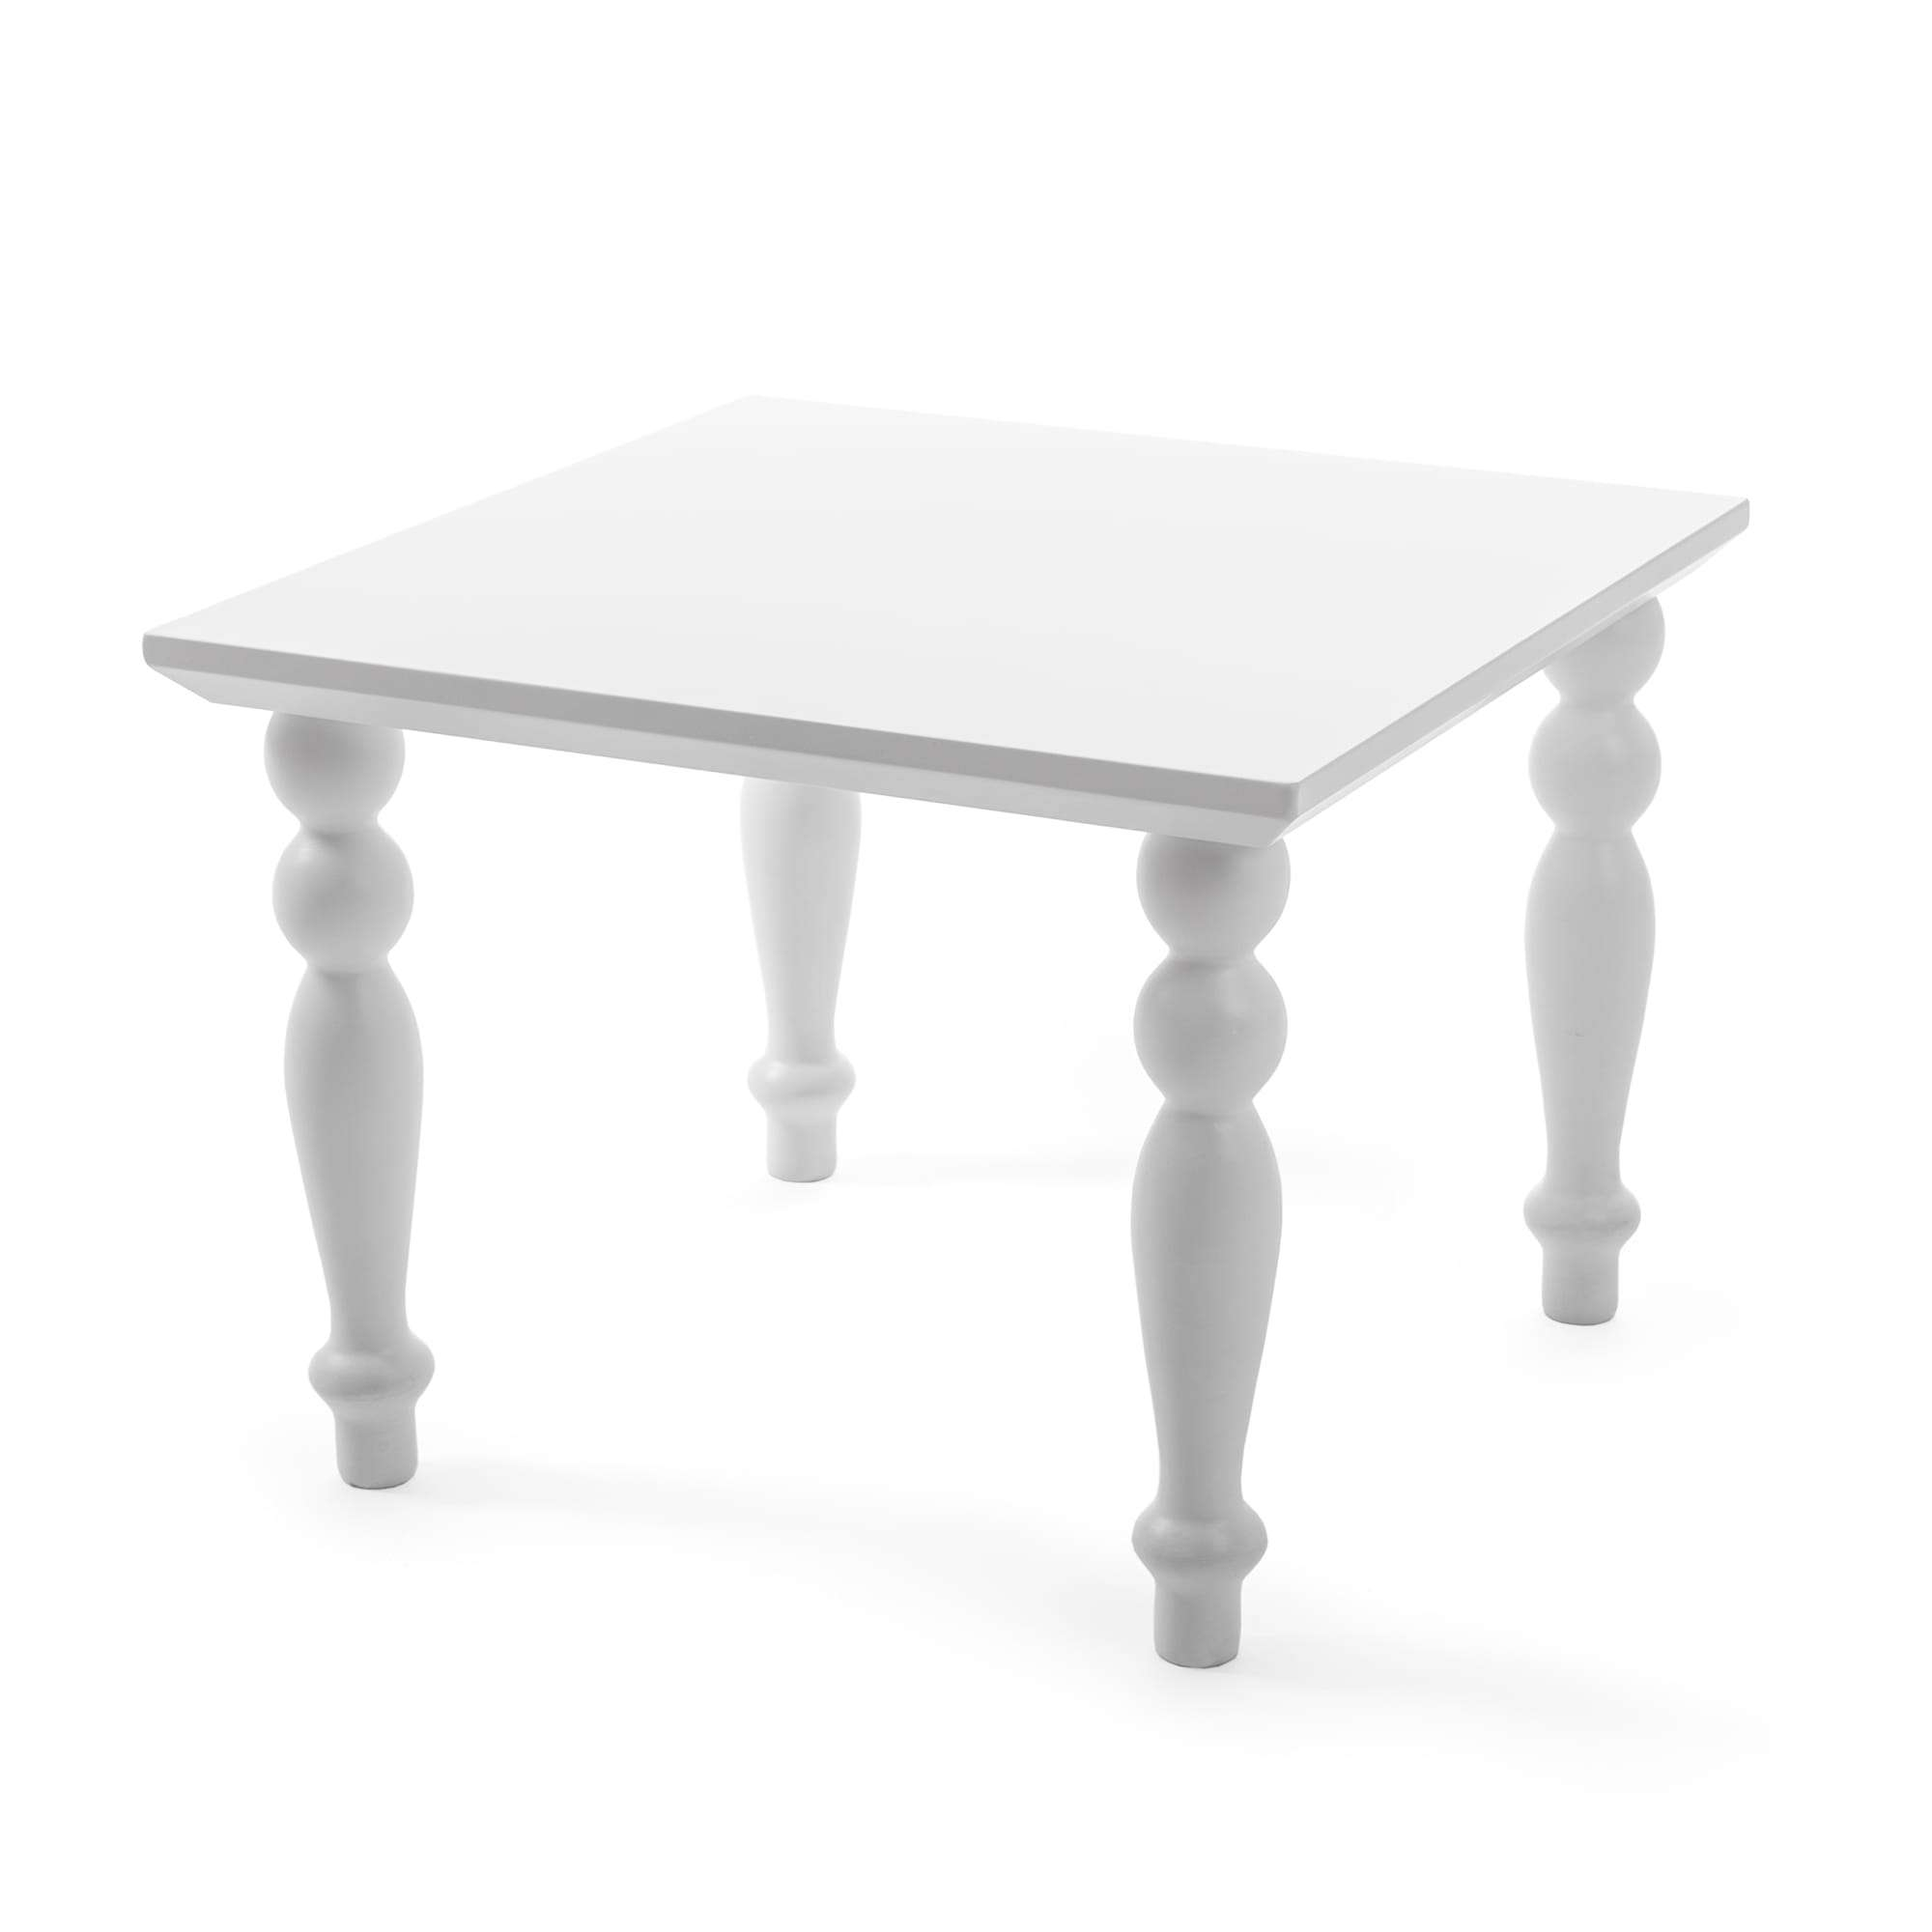 Coffee Table Square White – Seletti In 2017 Heritage Coffee Tables (View 17 of 20)